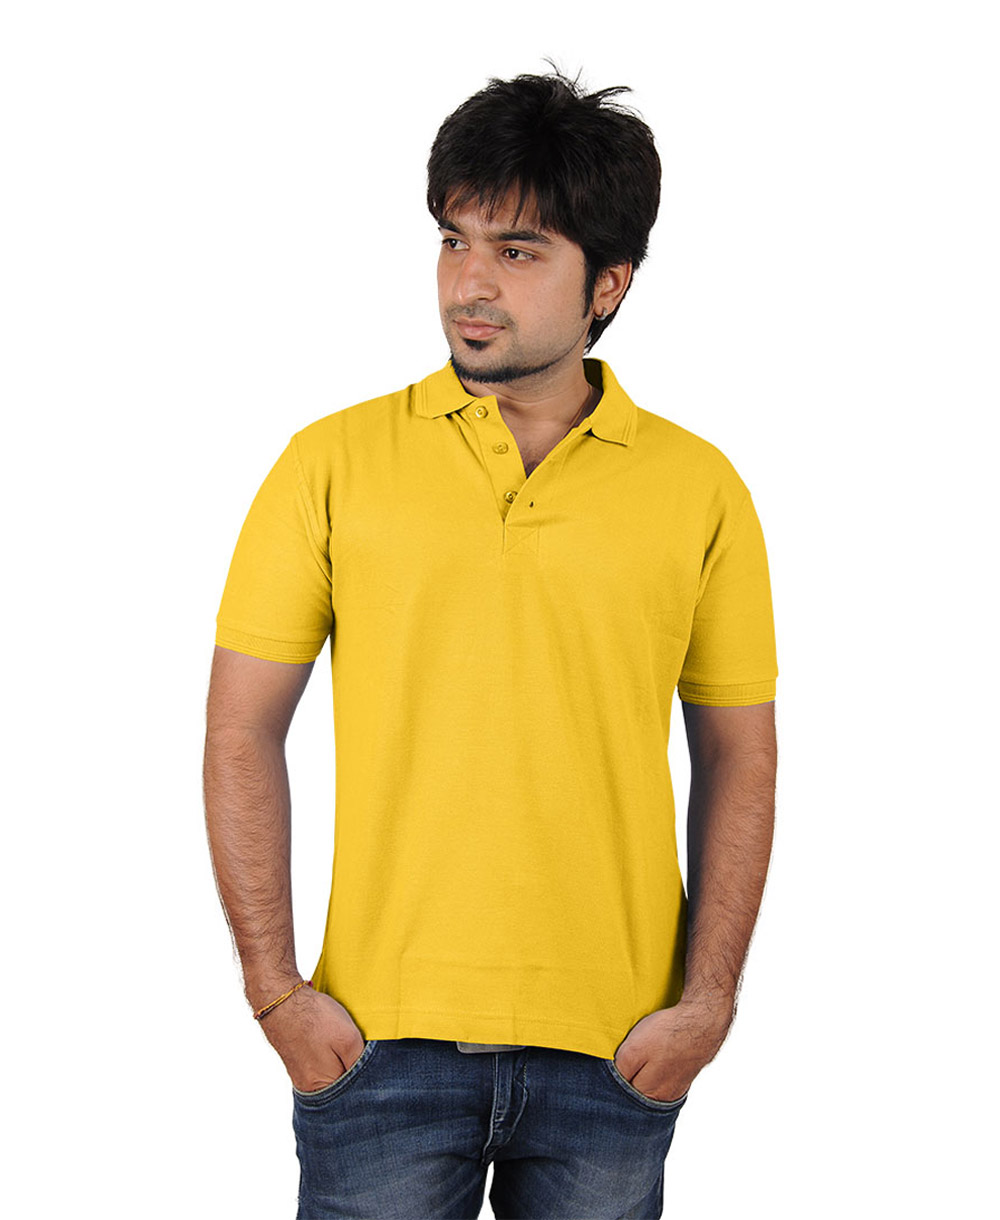 Softwear mens yellow collared t shirt for Mens collared t shirts